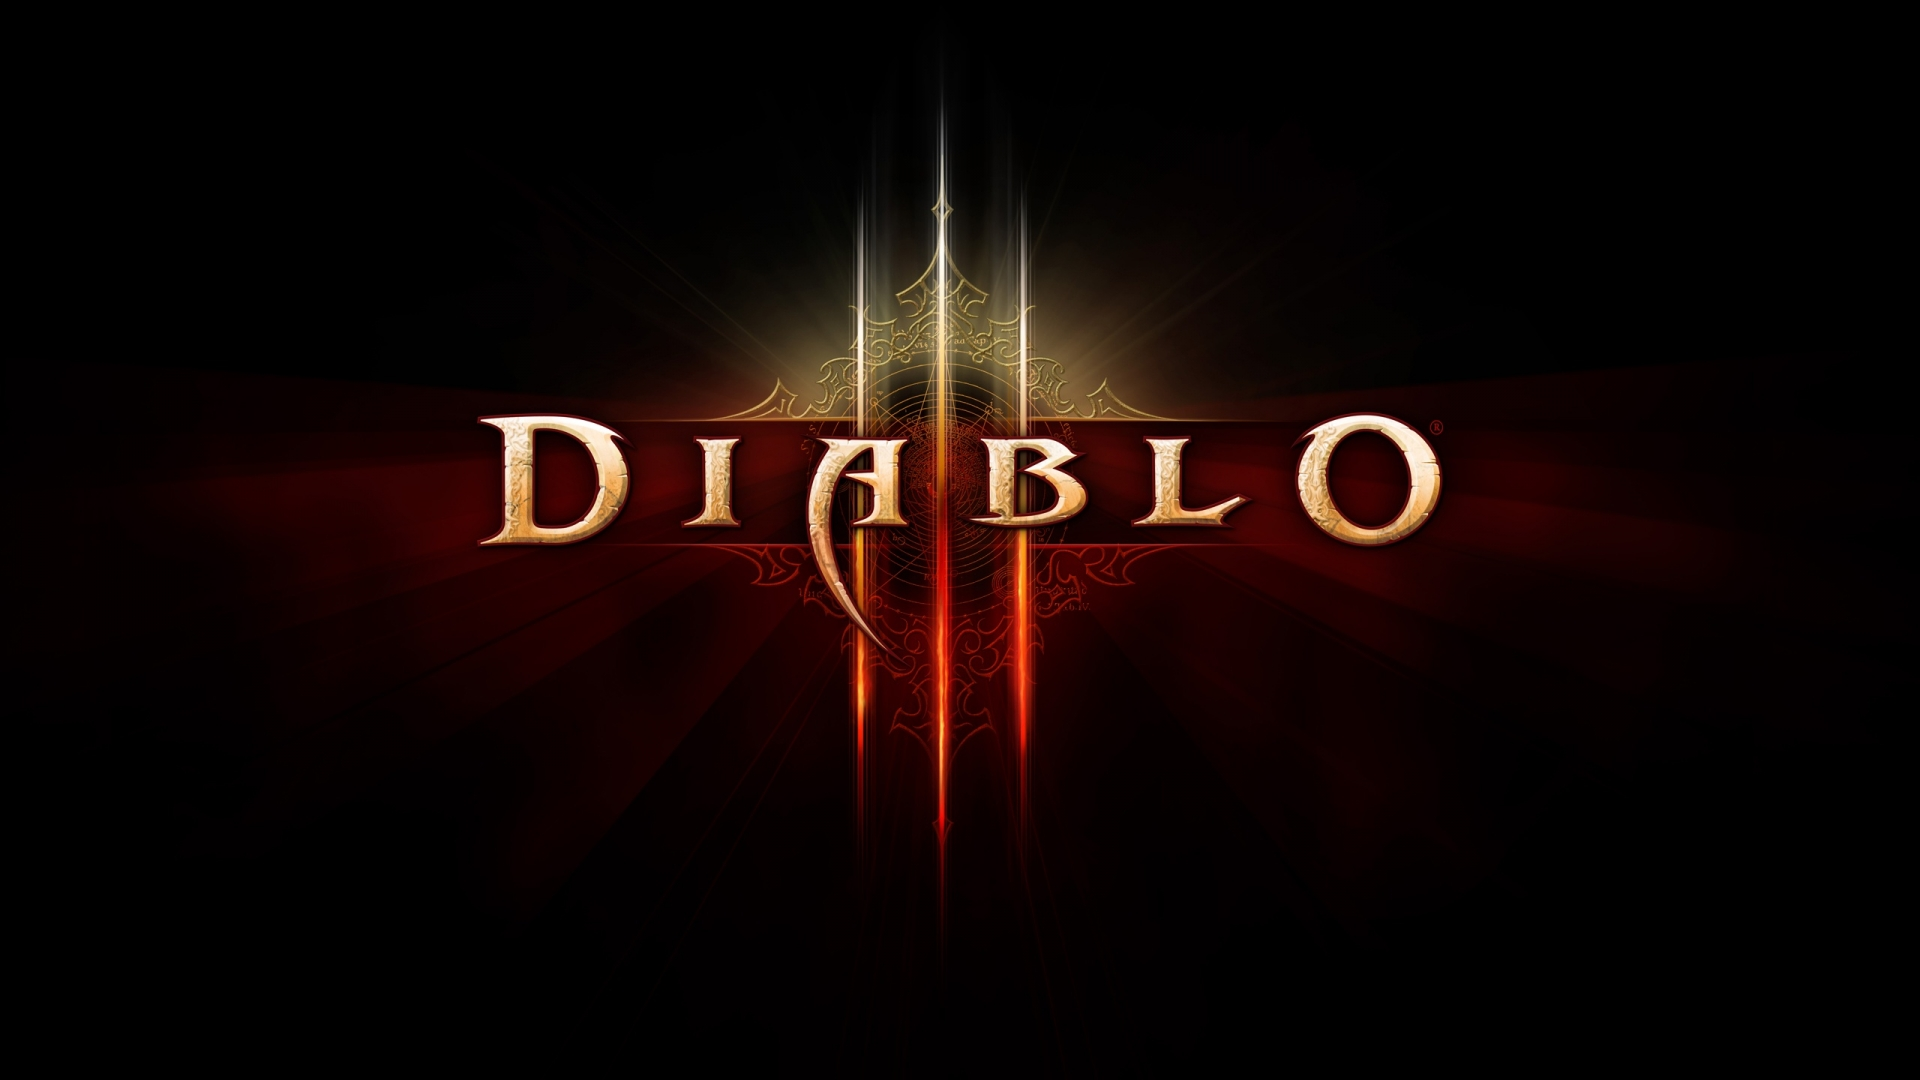 Diablo 3 wallpaper 27